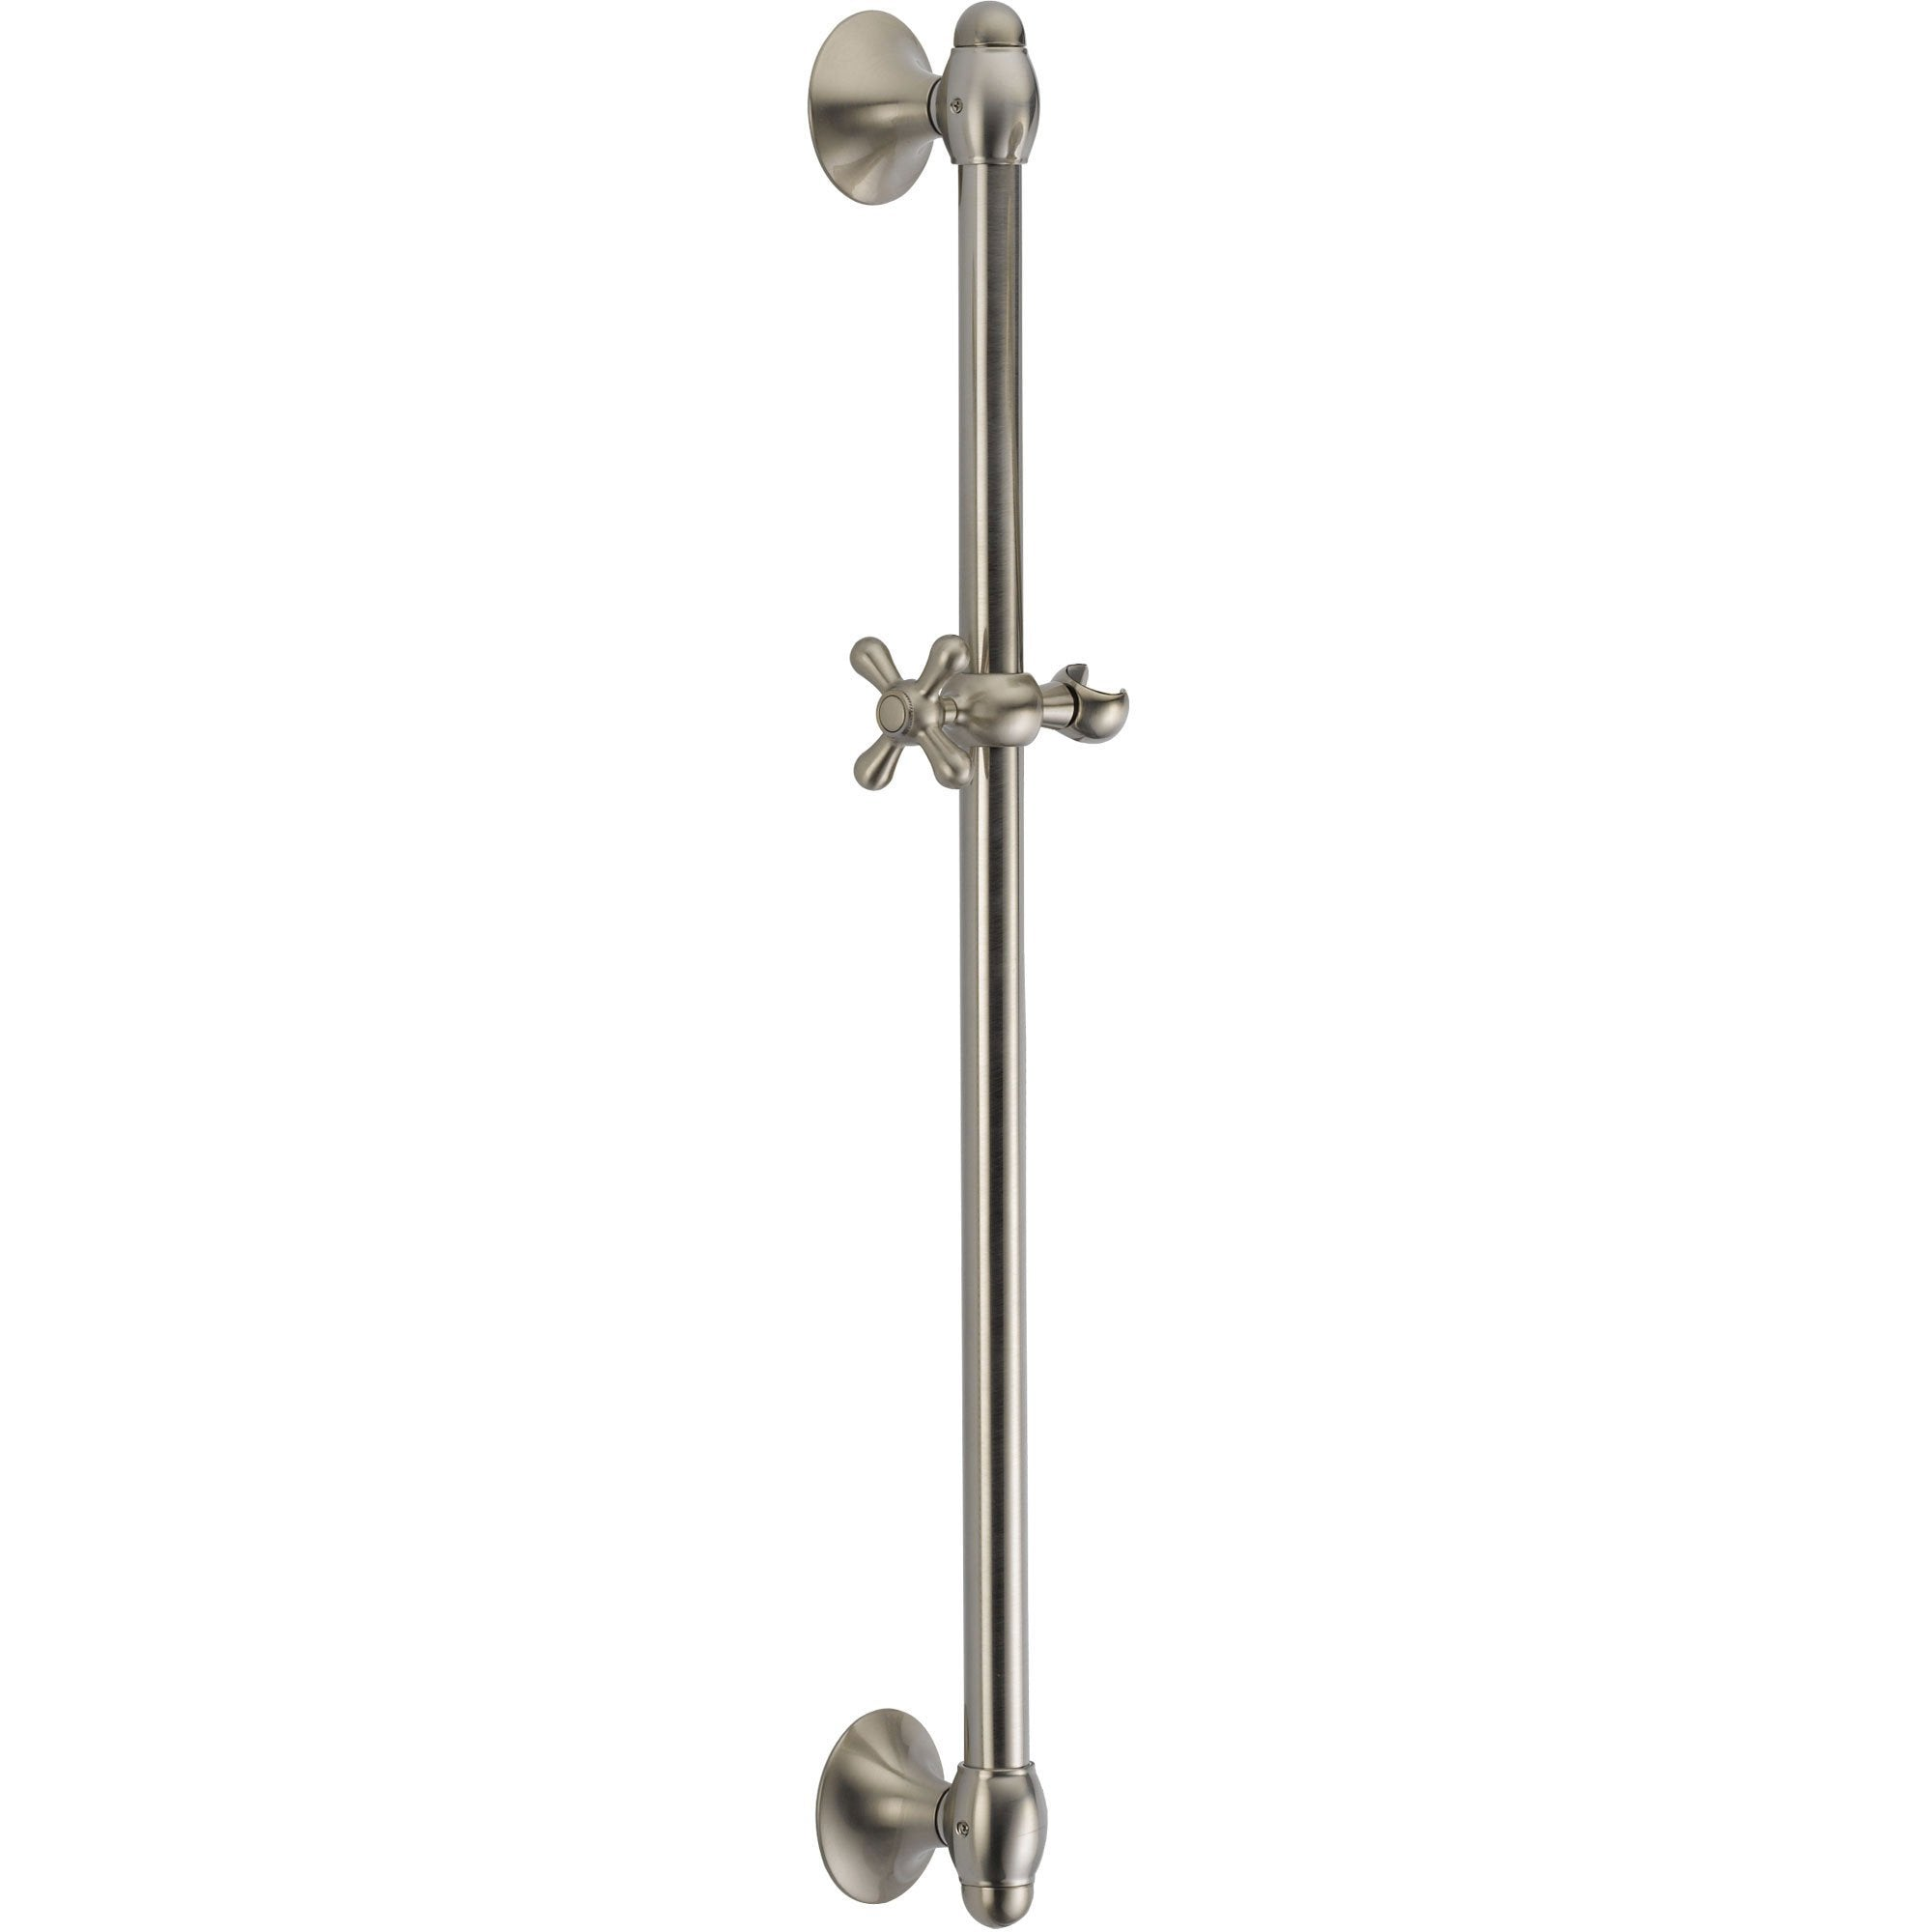 Delta 29 inch Stainless Steel Finish Handheld Shower Wall Slide Bar 561198